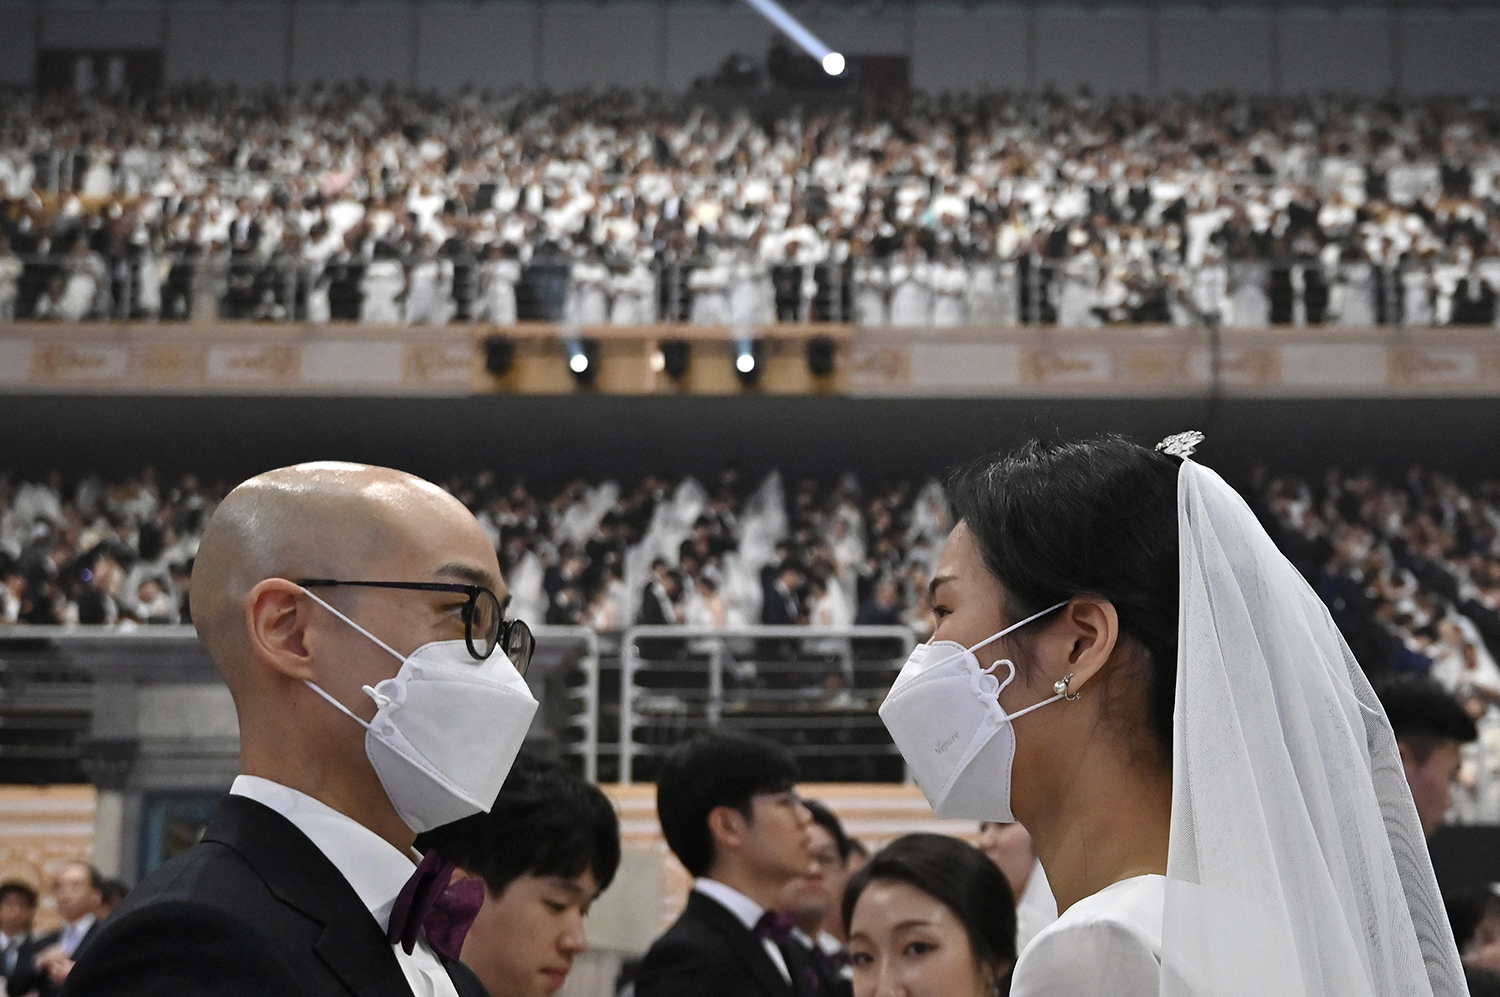 A couple wearing protective face masks attend a mass wedding ceremony organized by the Unification Church at Cheongshim Peace World Center in Gapyeong, South Korea, on Feb. 7. JUNG YEON-JE/AFP via Getty Images